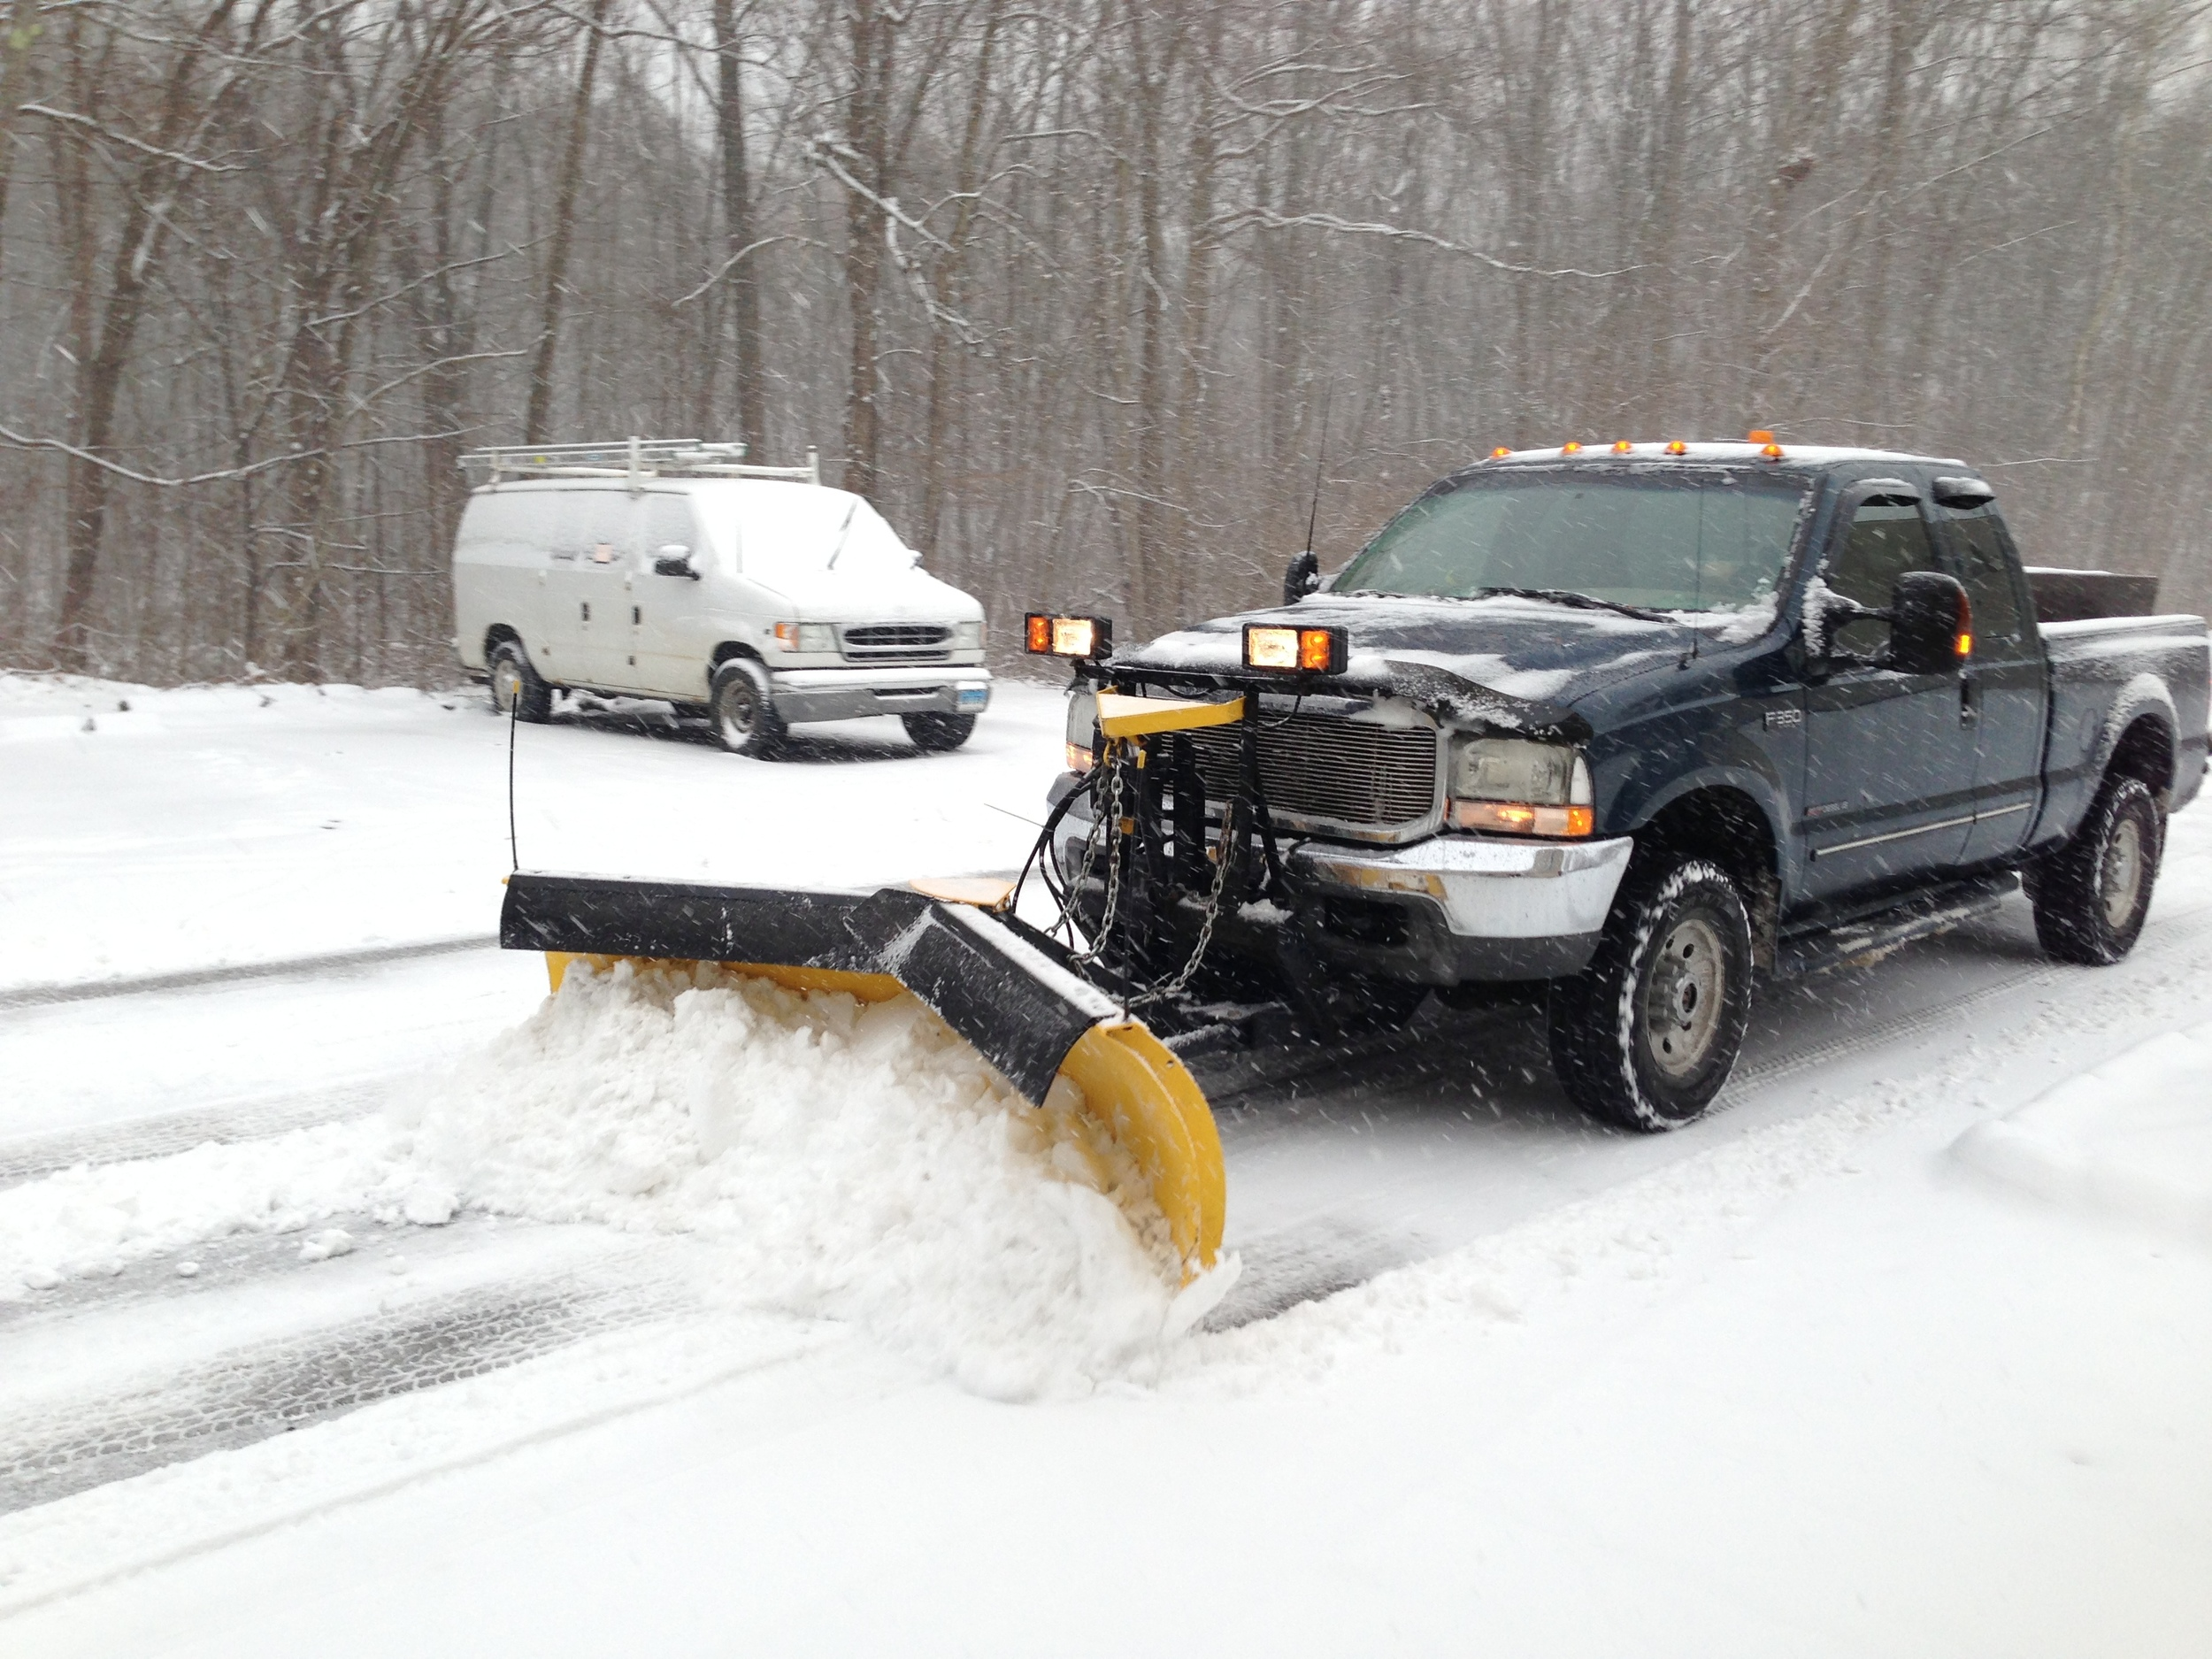 jfsons_snow_plowing_20130513.jpg